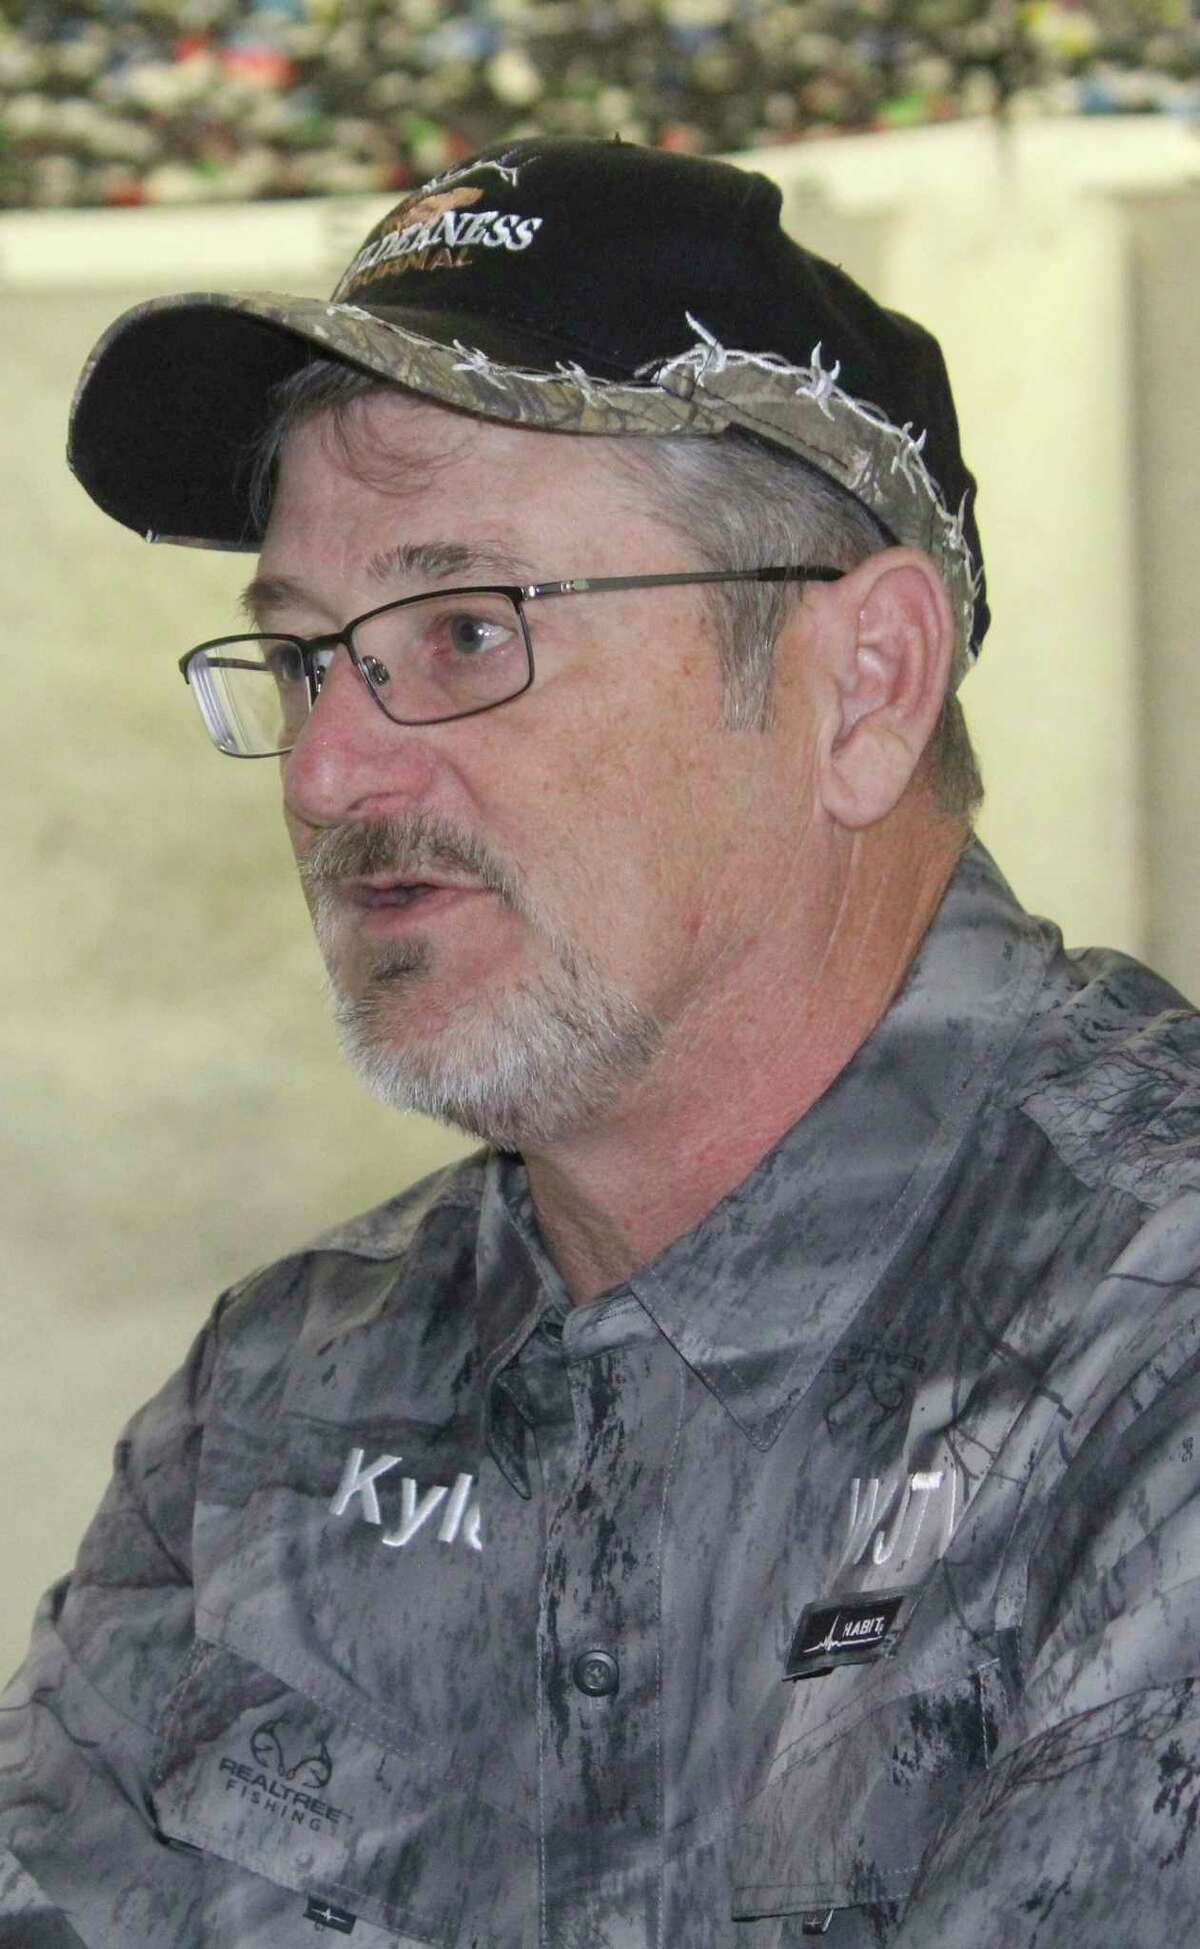 Kyle Randall says more rain is needed for area fishing spots. (File photo)